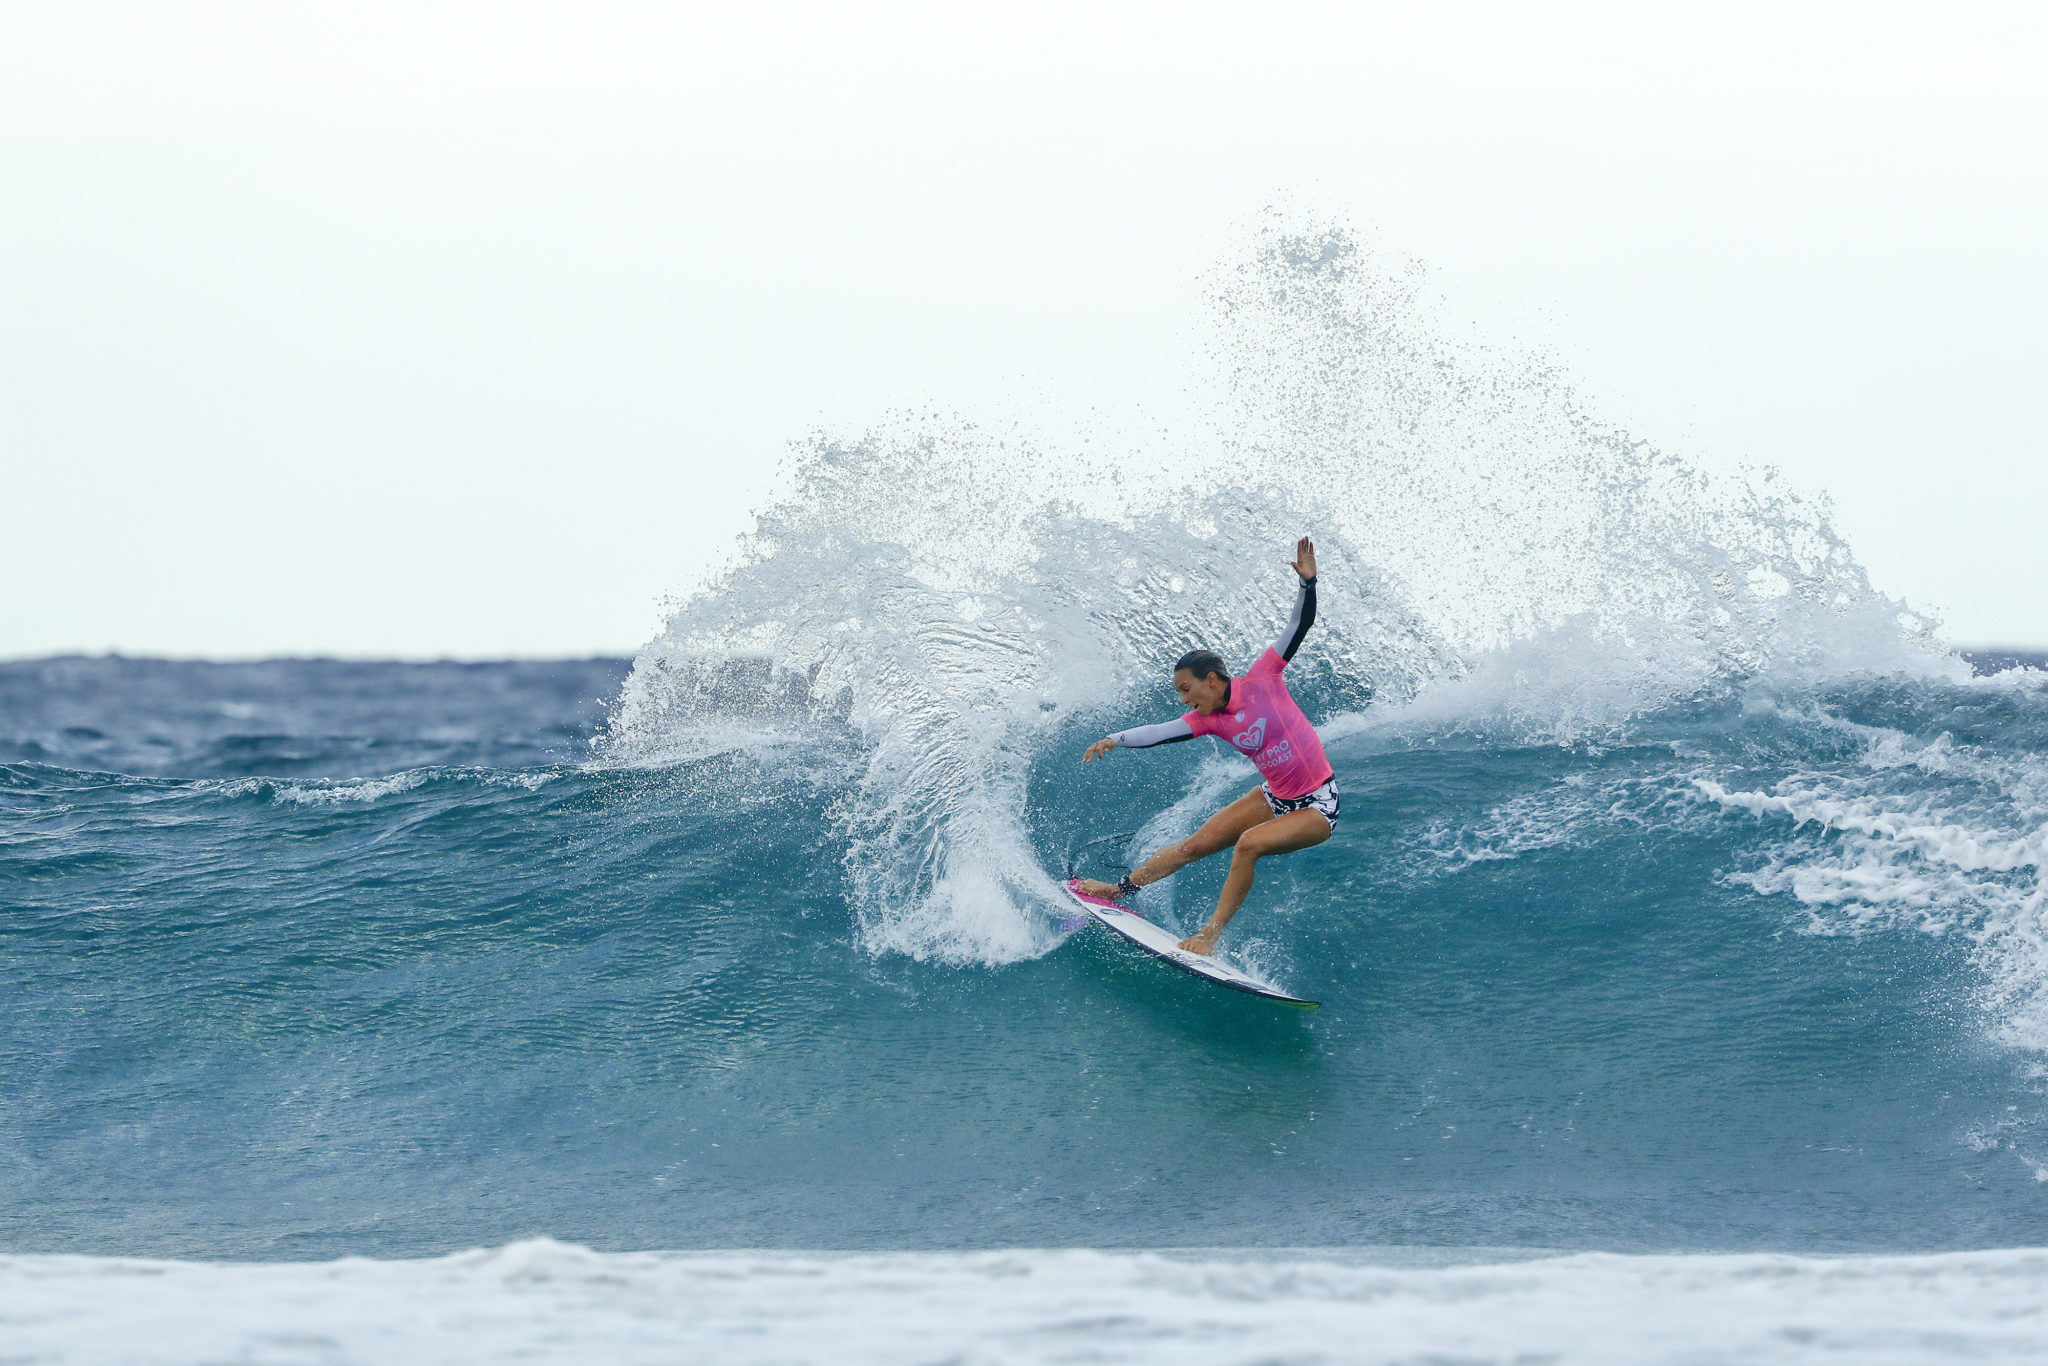 Sally Fitzgibbons of Australia advanced to the quarterfinals after winning Heat 3 of Round Four at the Roxy Pro Gold Coast, Australia.